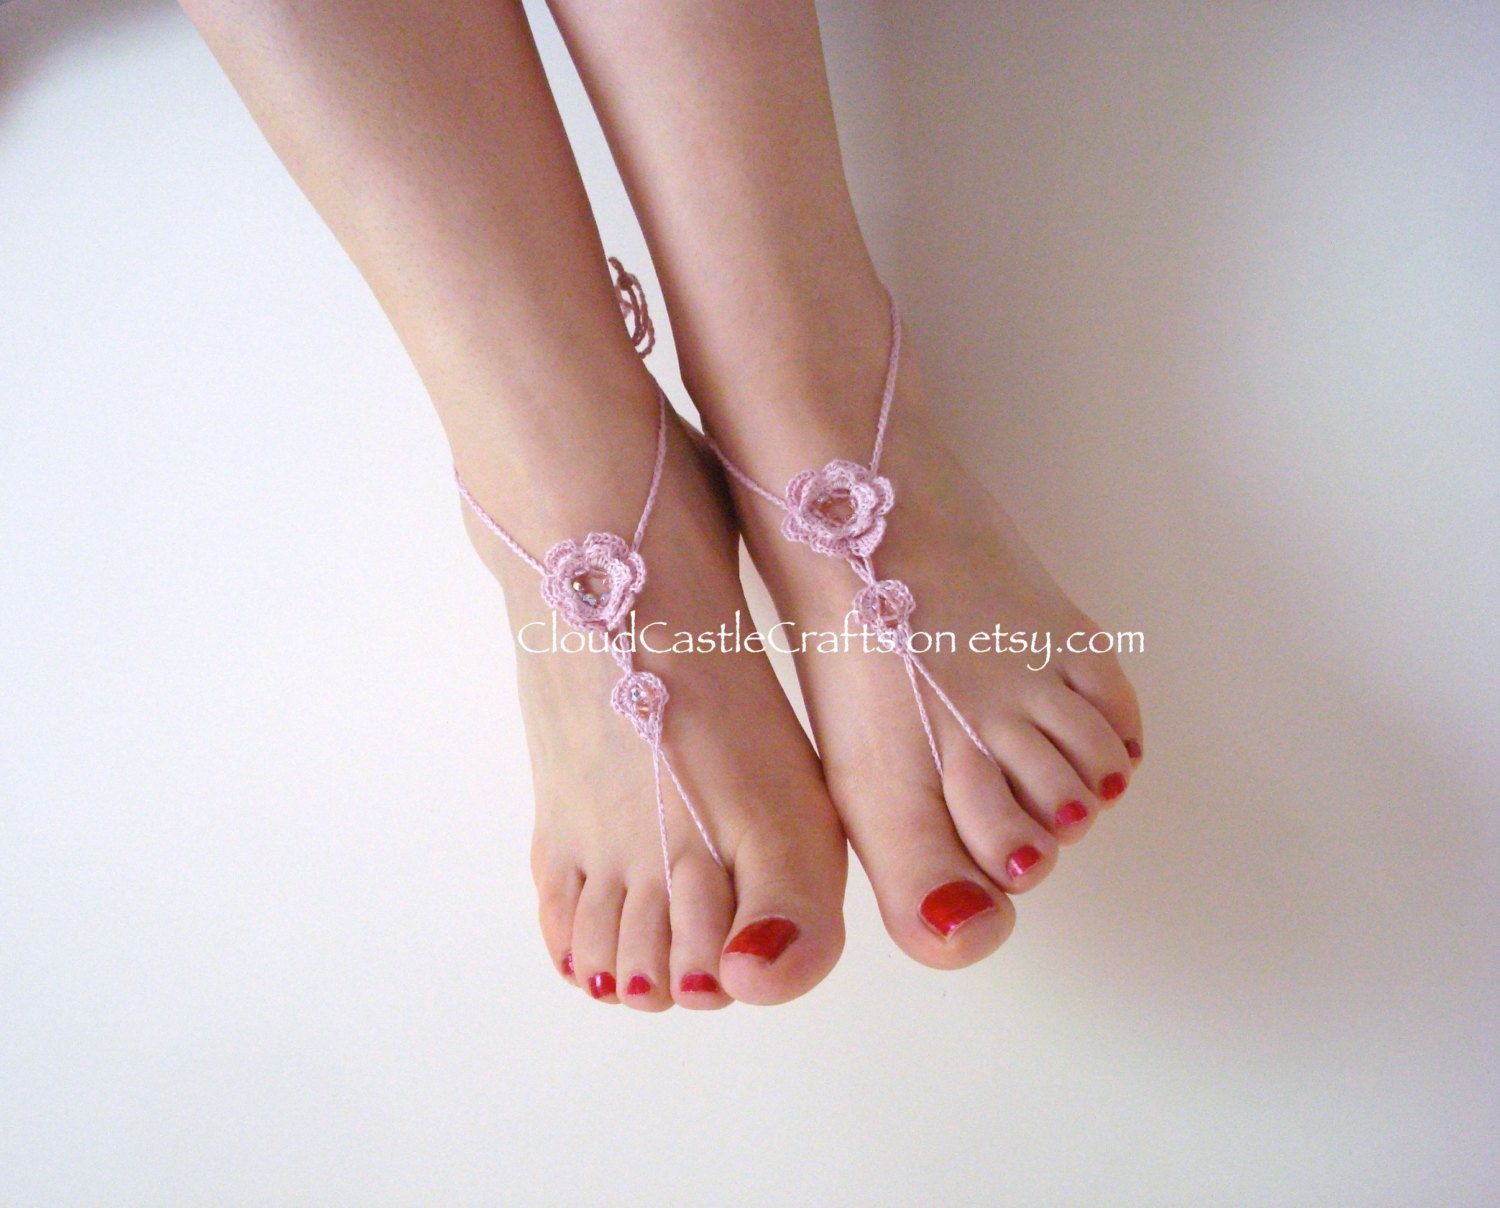 Beach Wedding Barefoot Sandals Crochet Bare Foot Wear Accessories Shoes With Beads